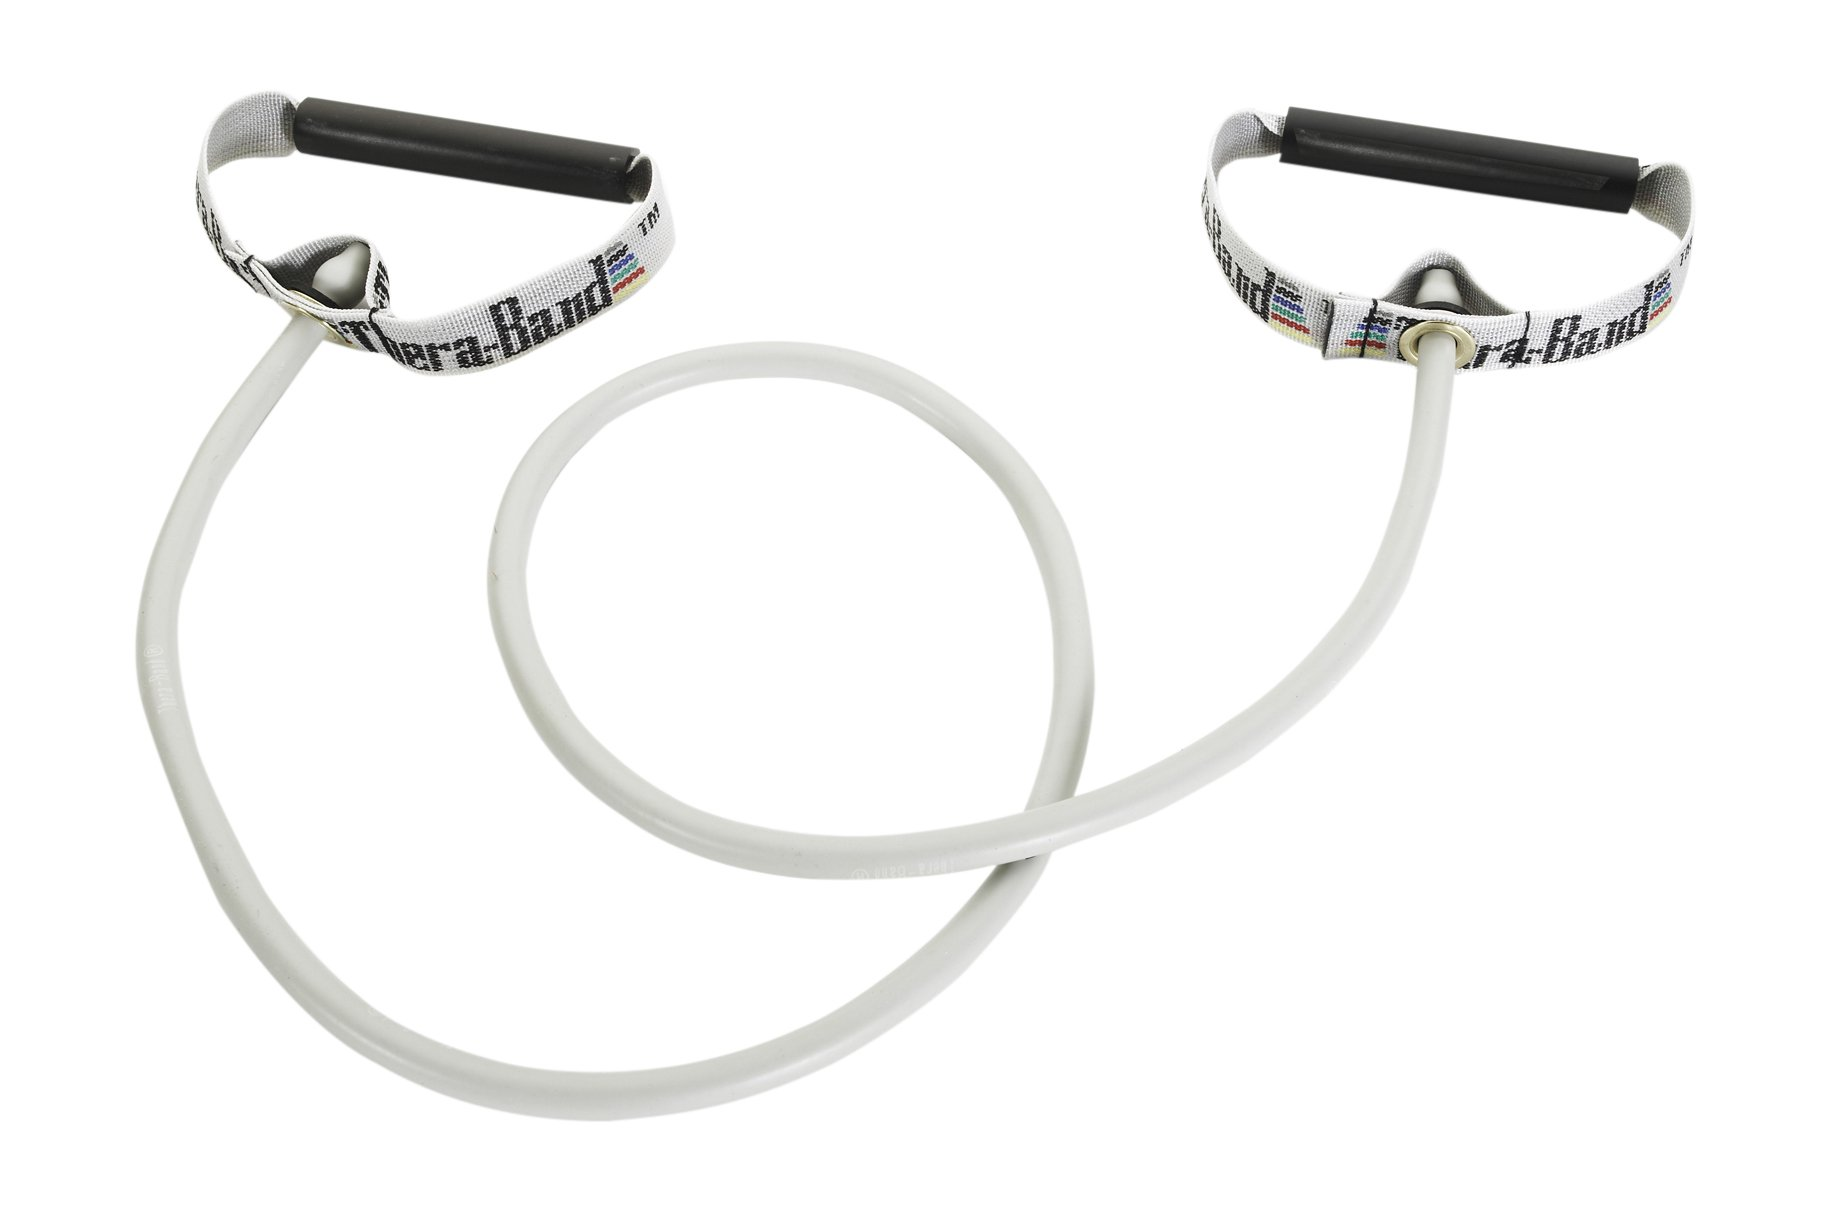 TheraBand Resistance Tubes with Hard Handles, Professional Latex Elastic Tubing for Exercise, Physical Therapy, Pilates, At-Home Workouts, & Rehab, 50 in., Silver, Super Heavy, Advanced Level 2